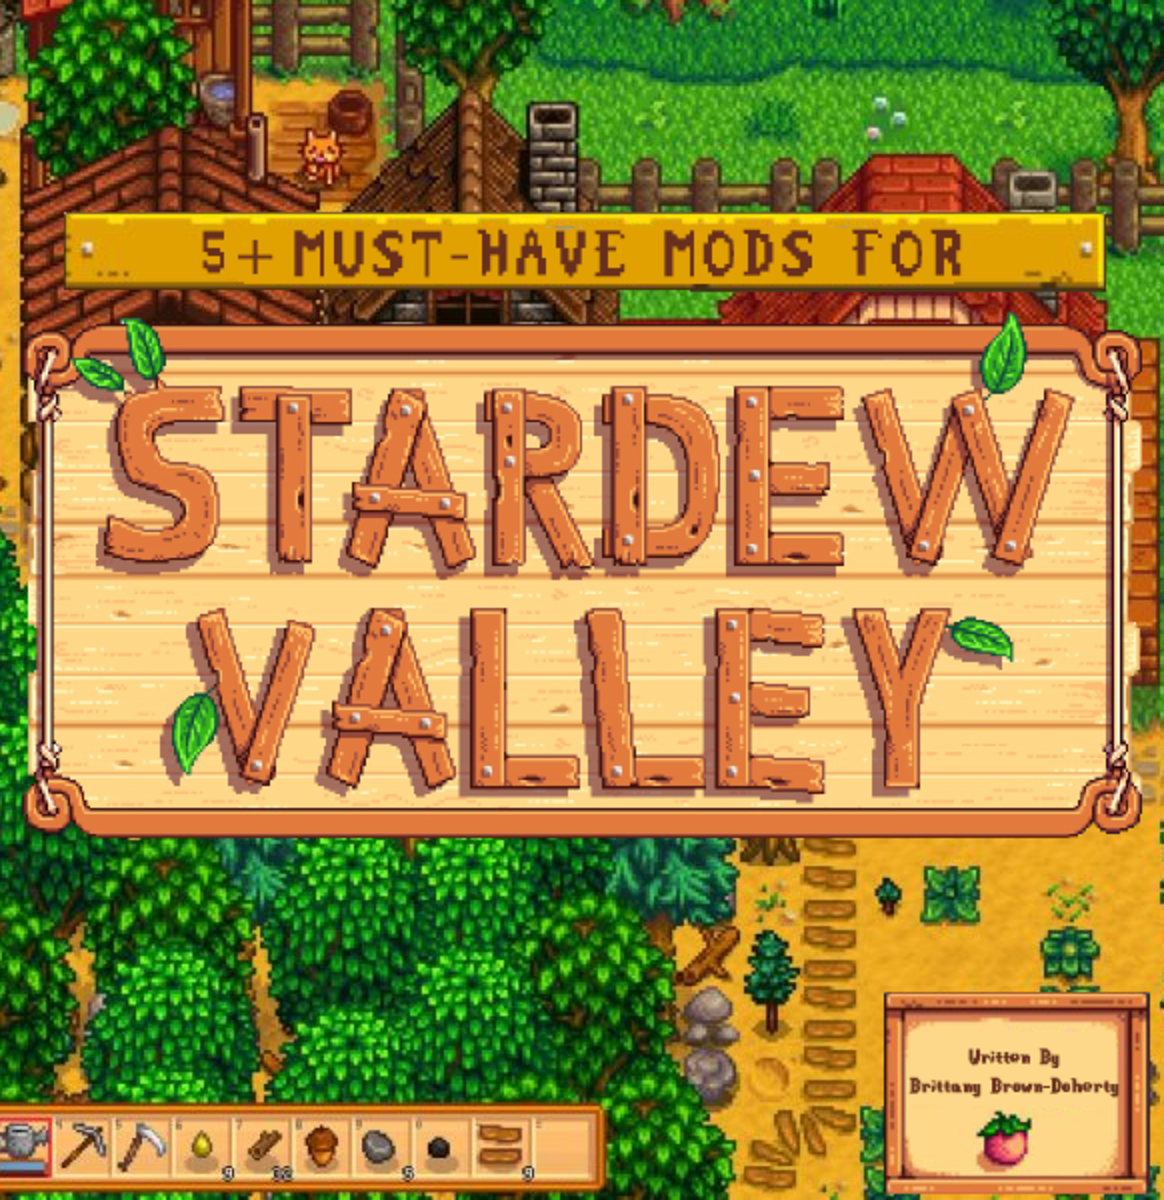 5+ Must-Have Mods for Stardew Valley!